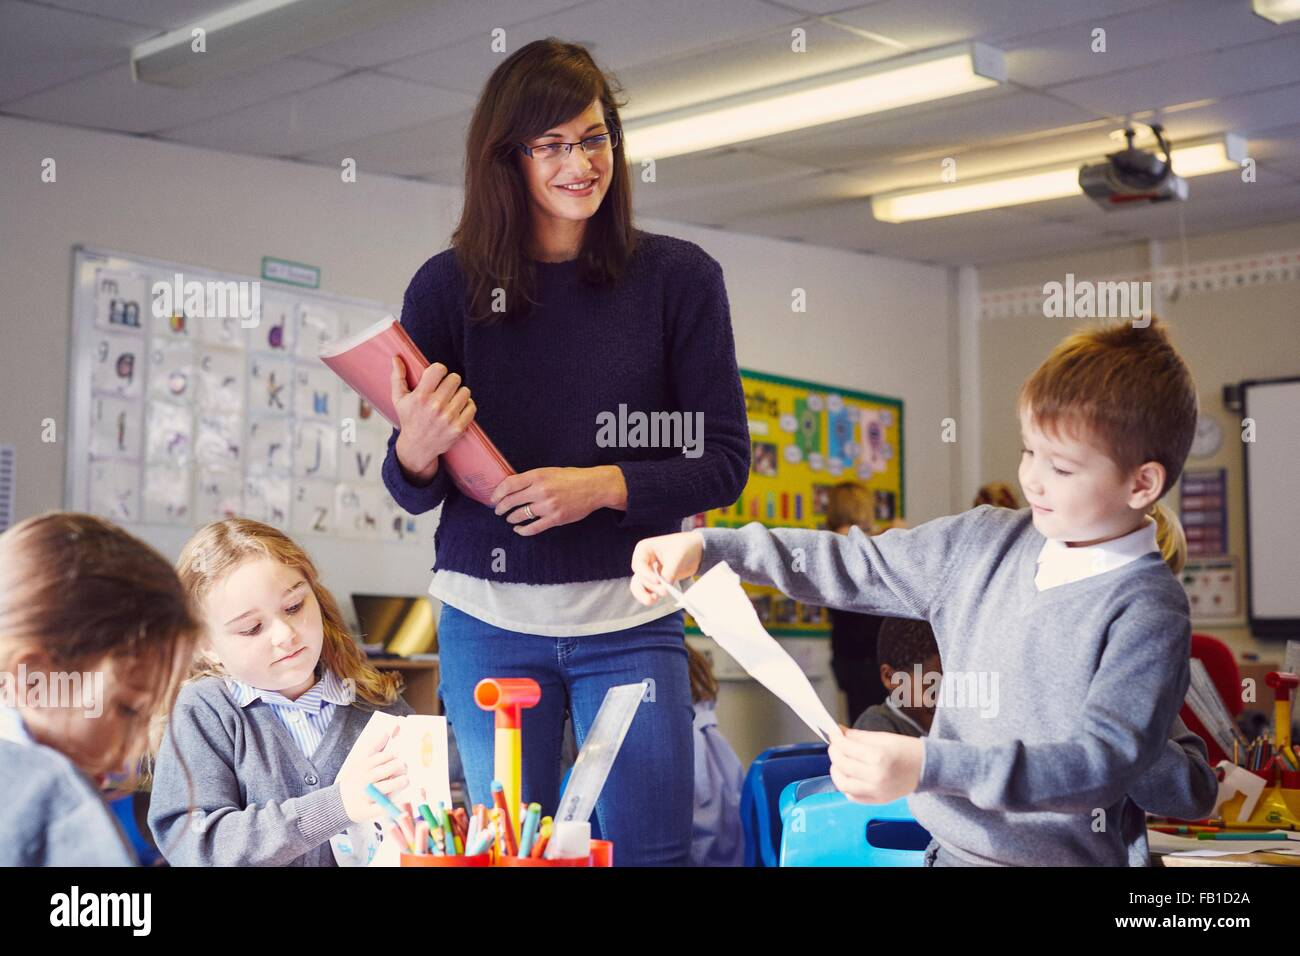 Female teacher with children drawing in elementary school classroom - Stock Image